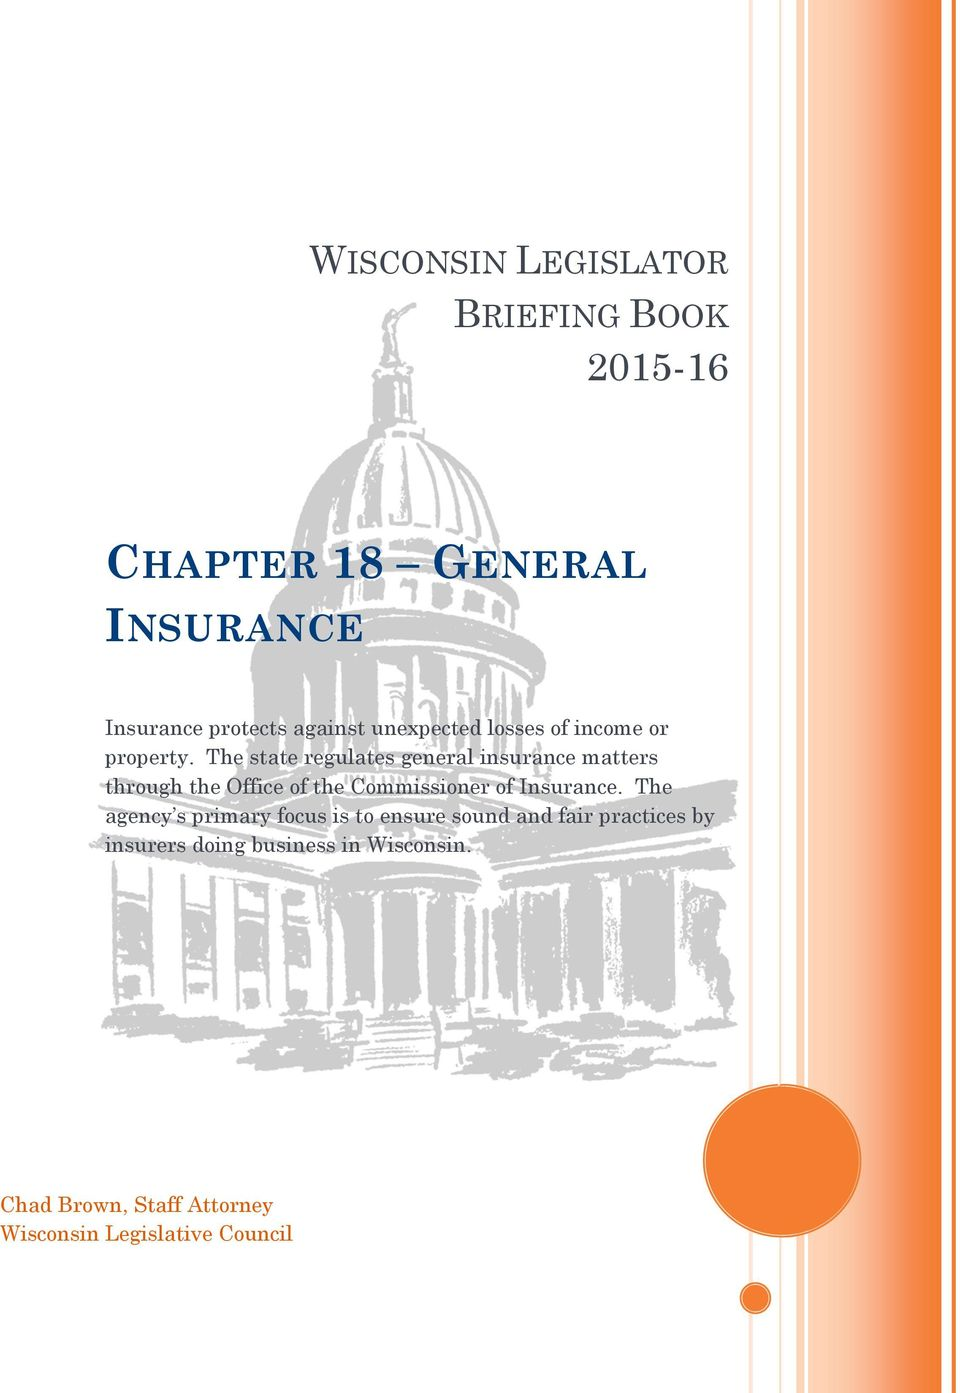 The state regulates general insurance matters through the Office of the Commissioner of Insurance.